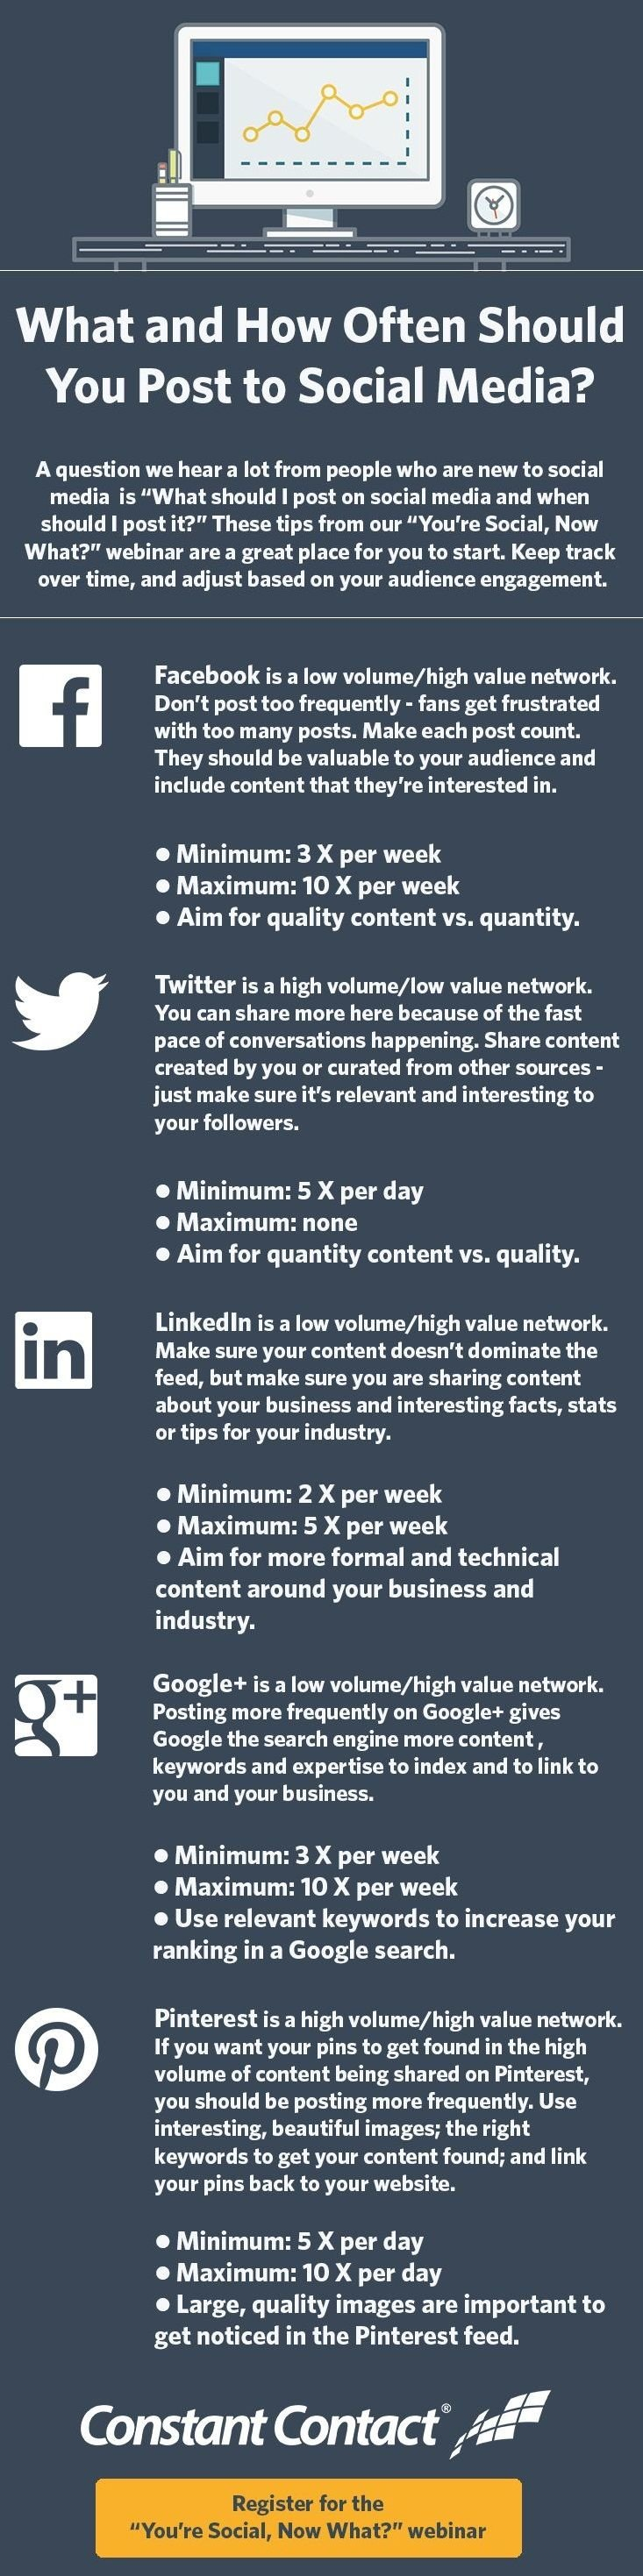 What and How often should you post on Social Media? #infographic